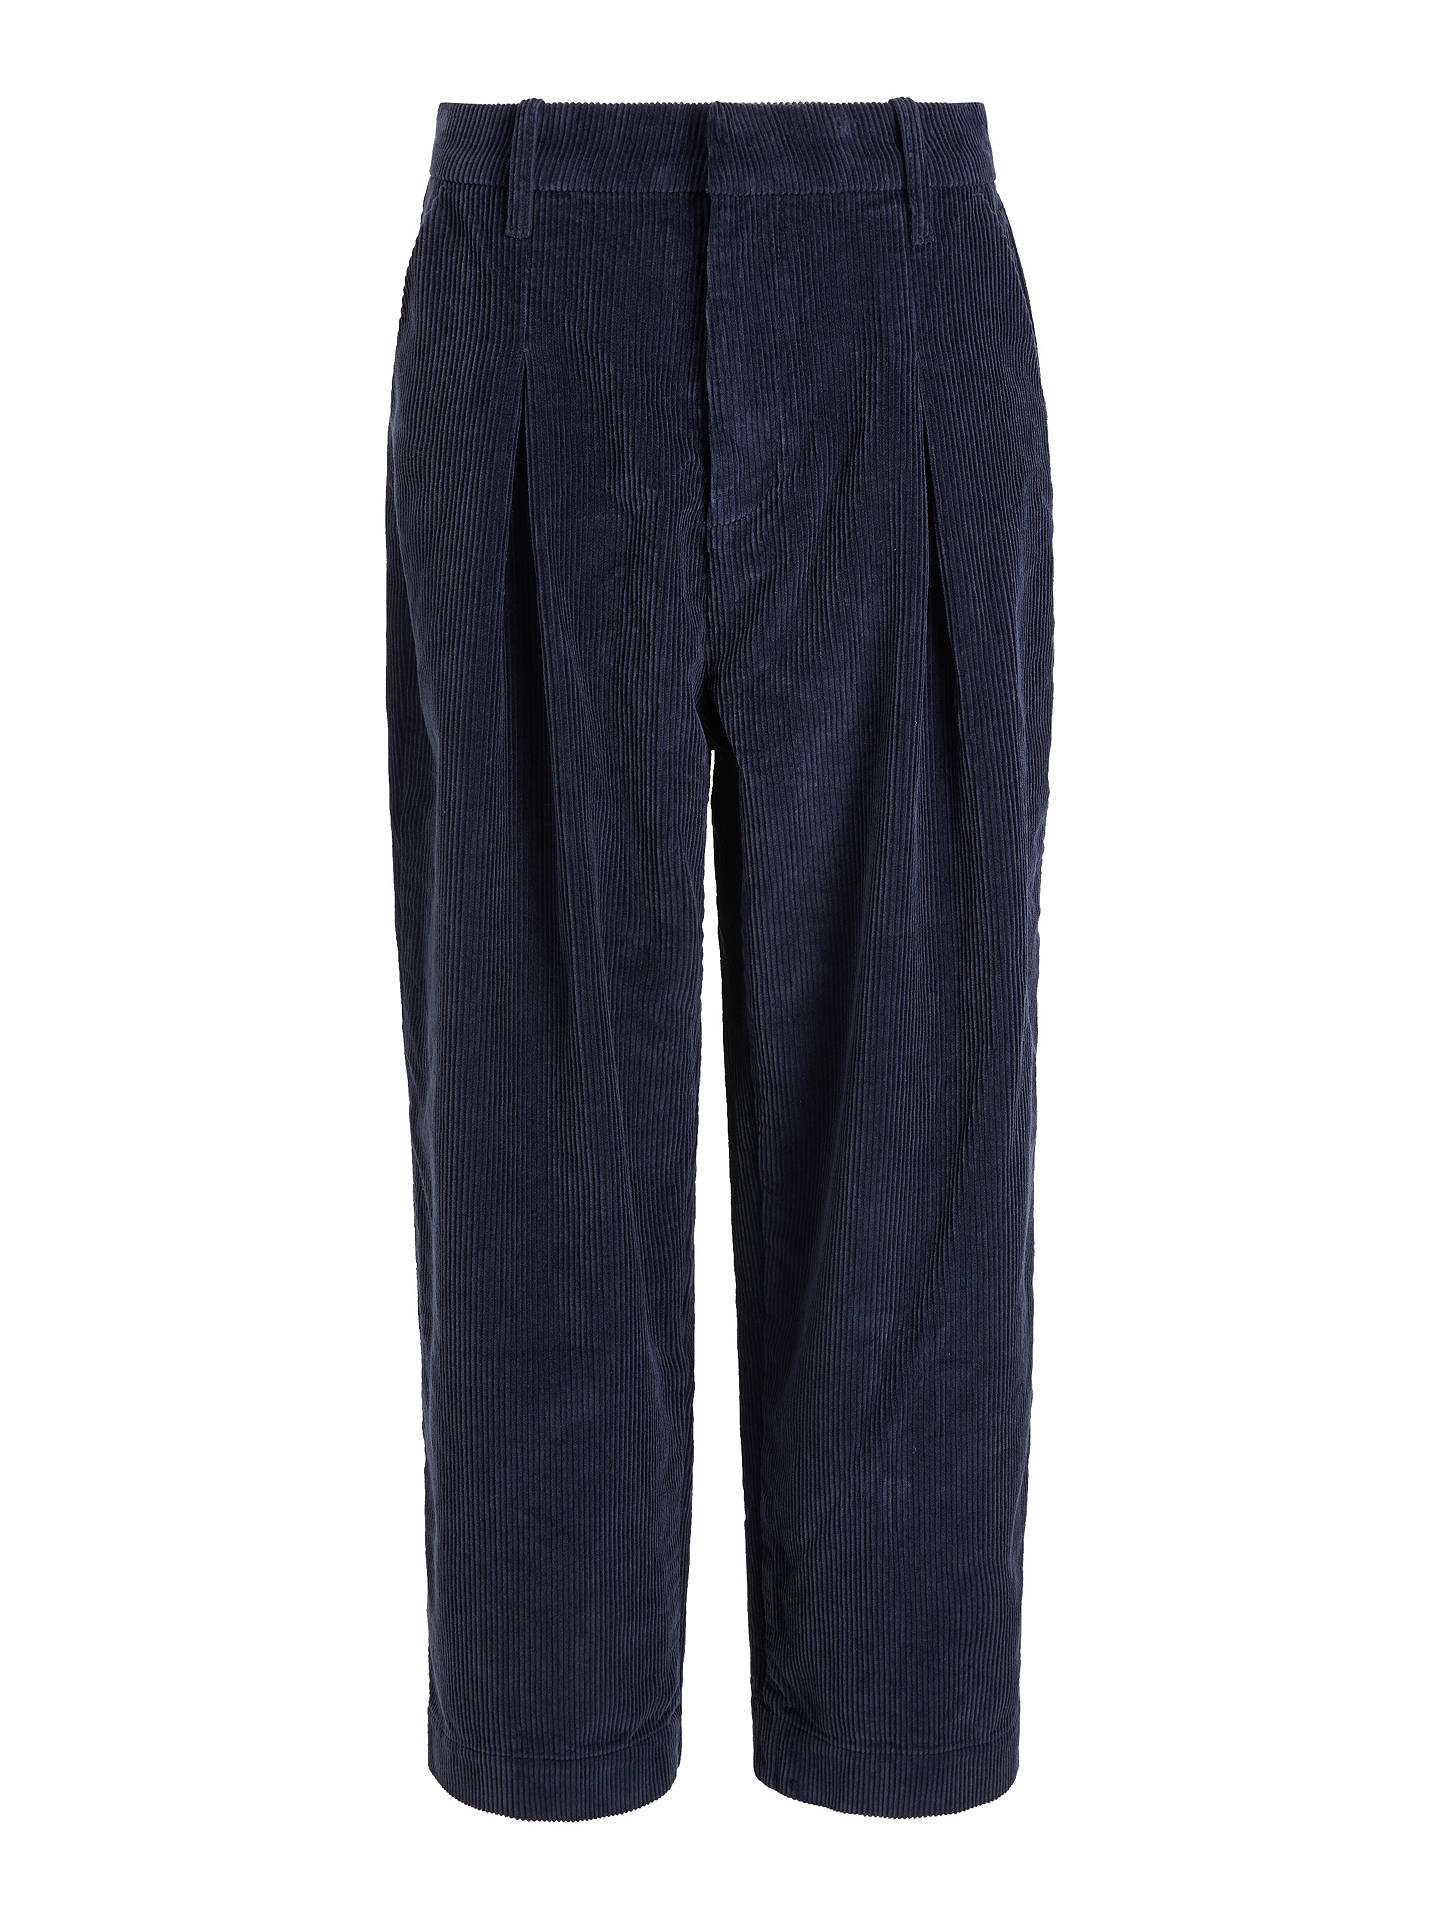 Buy Kin Cord Balloon Trousers, Navy, 16 Online at johnlewis.com